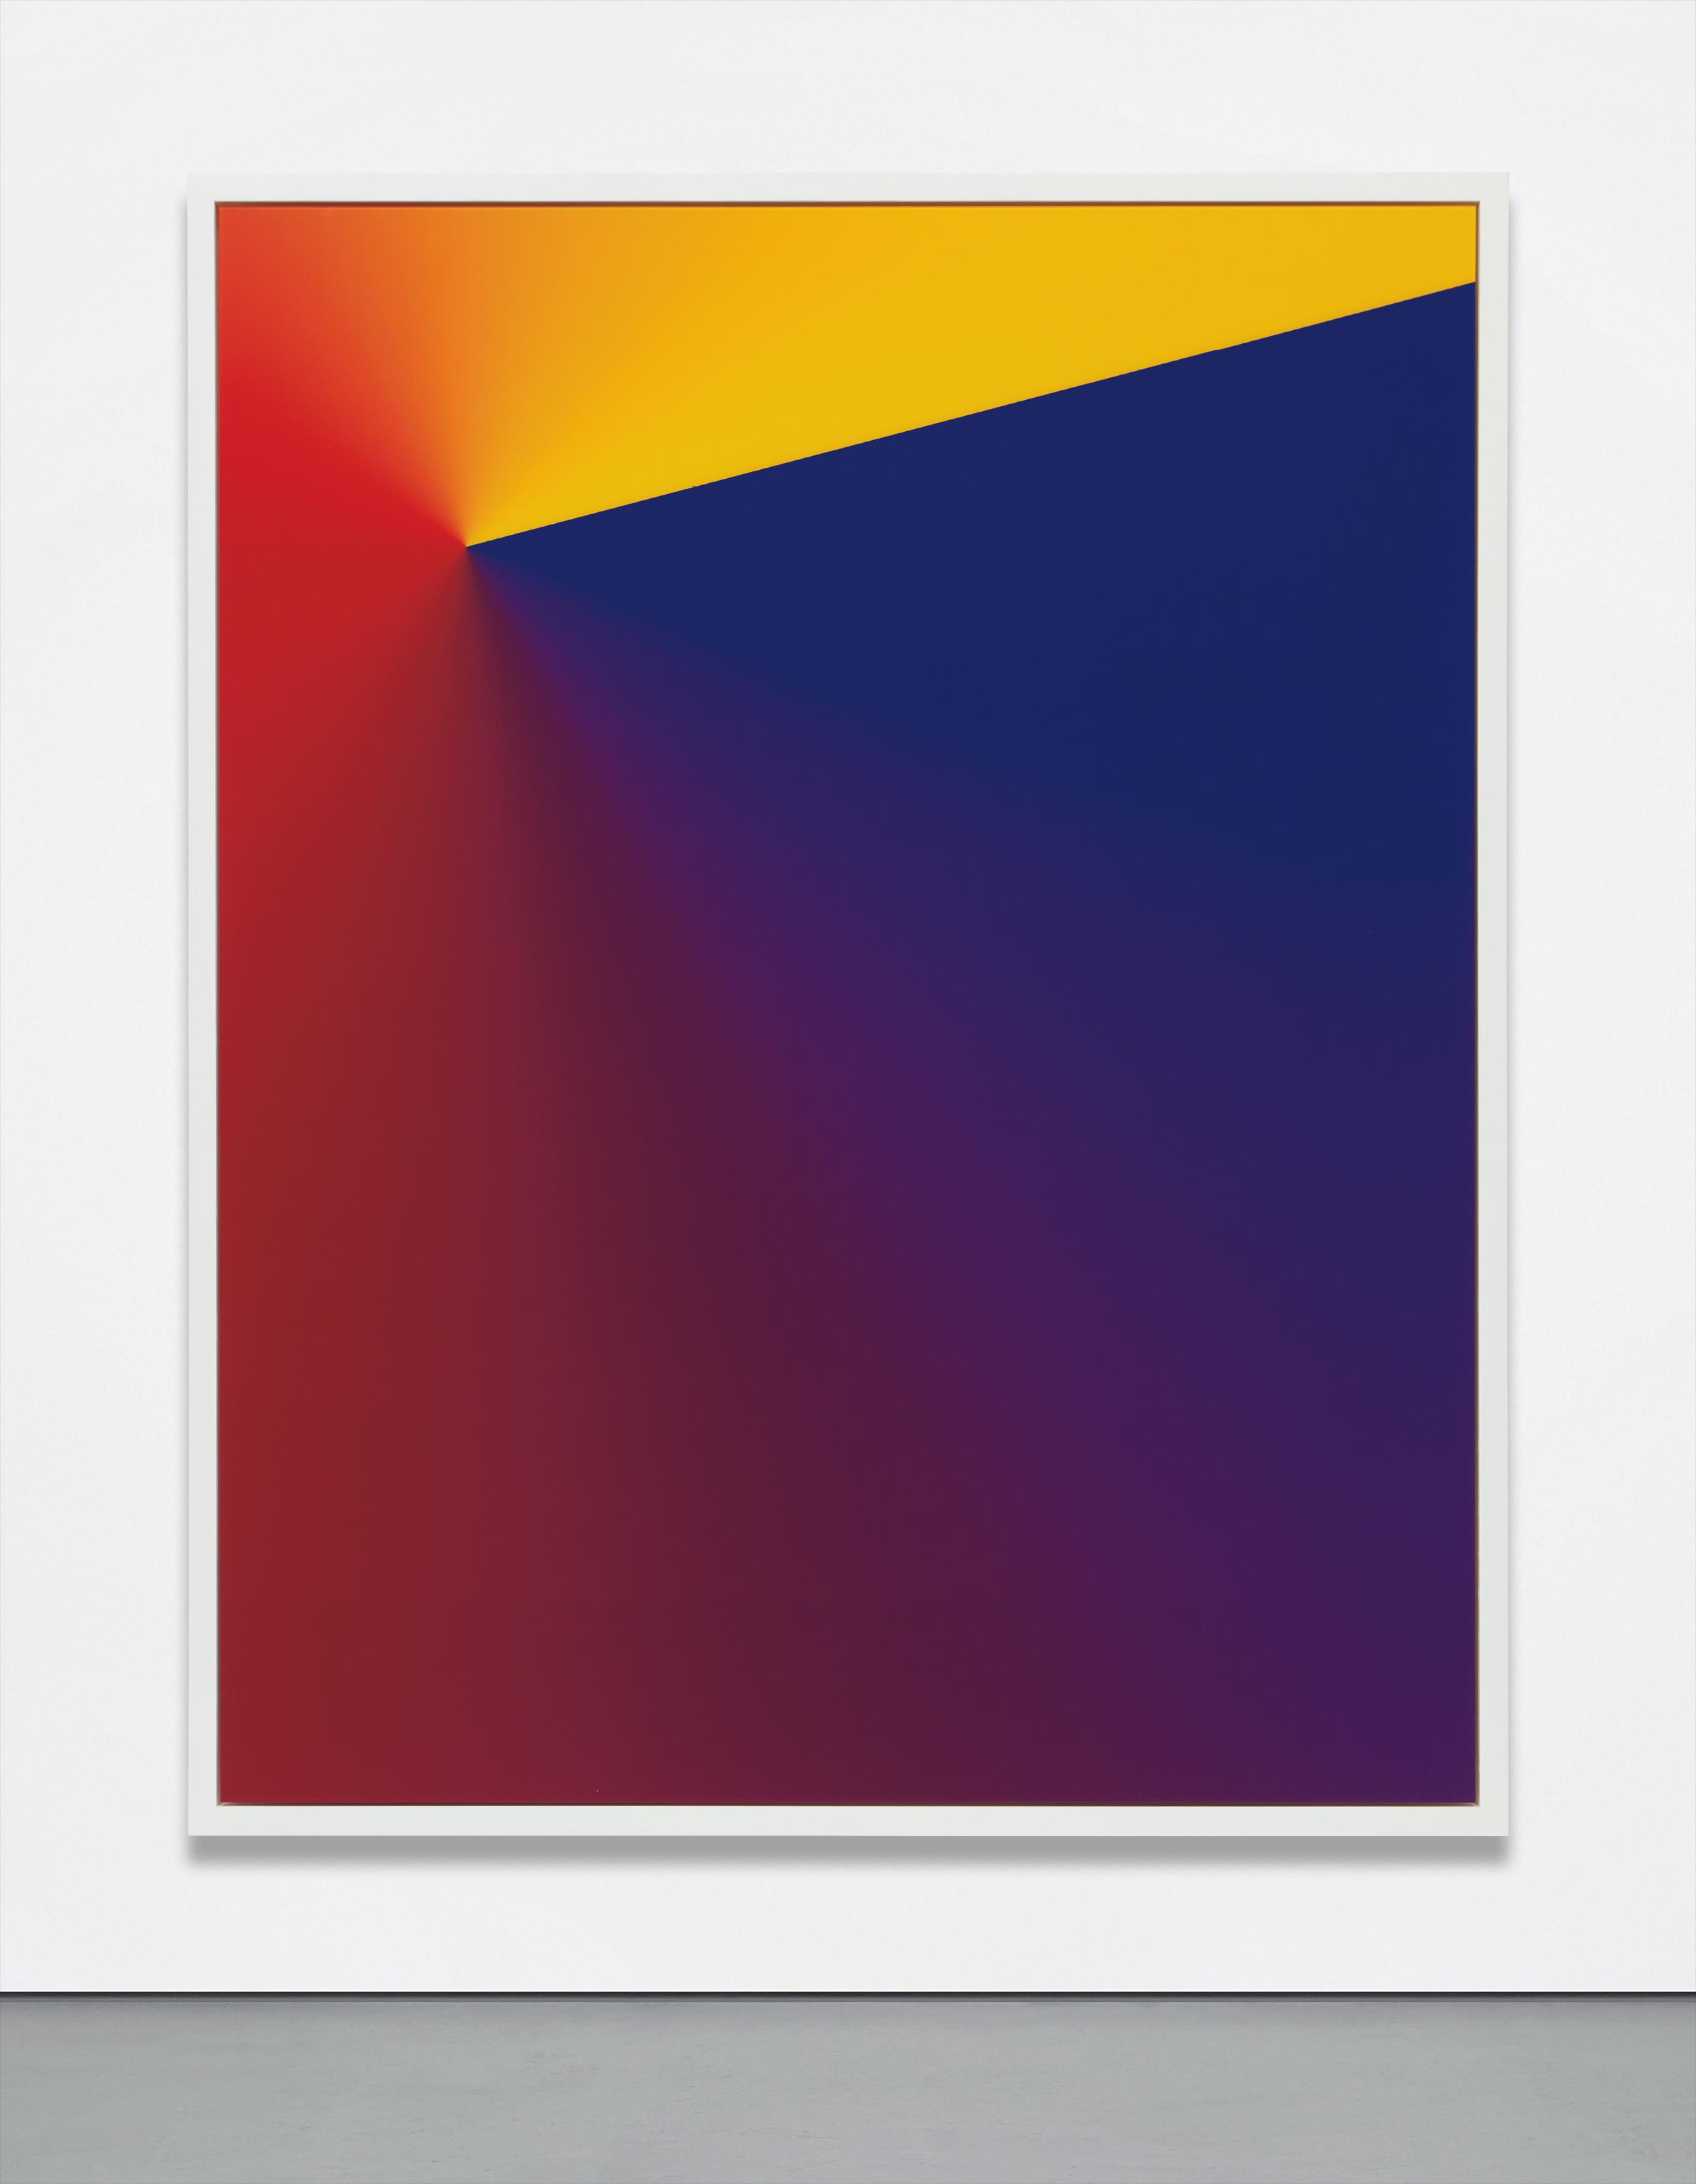 Cory Arcangel-Photoshop Cs: 84 By 66 Inches, 300 Dpi, Rgb, Square Pixels, Default Gradient, Blue, Red, Yellow (Turn Reverse Off), Mousedown X=4000 Y=5350, Mouse Up X=20000 Y=1200-2011